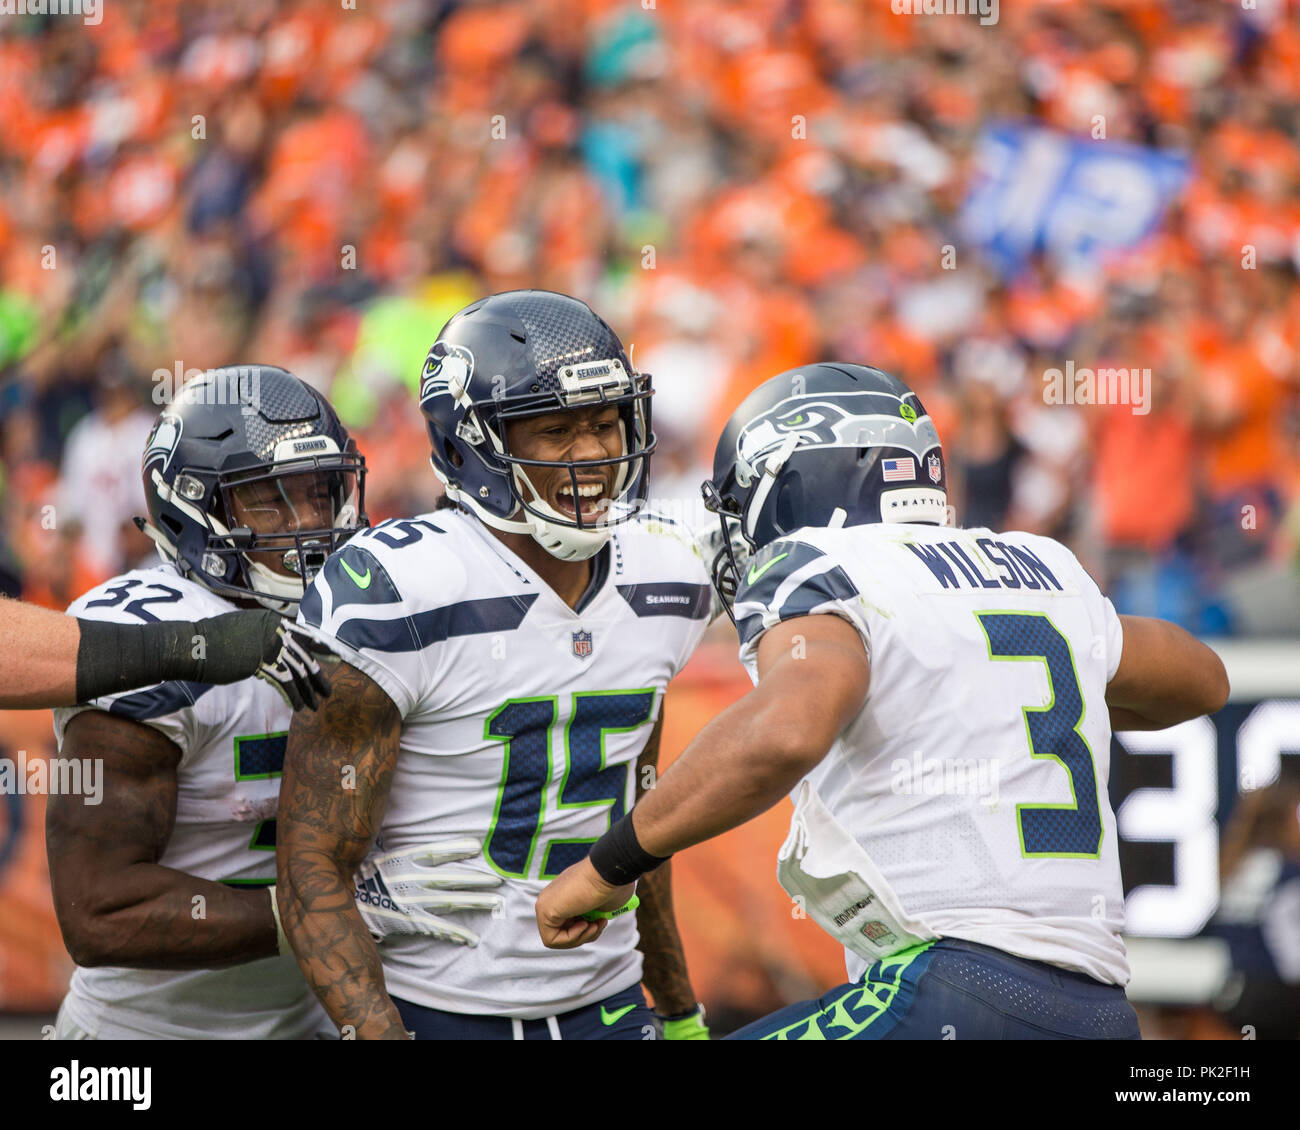 9f1edc22 September 09, 2018: Seattle Seahawks wide receiver Brandon Marshall (15)  celebrates with Seattle Seahawks quarterback Russell Wilson (3) after  scoring a ...